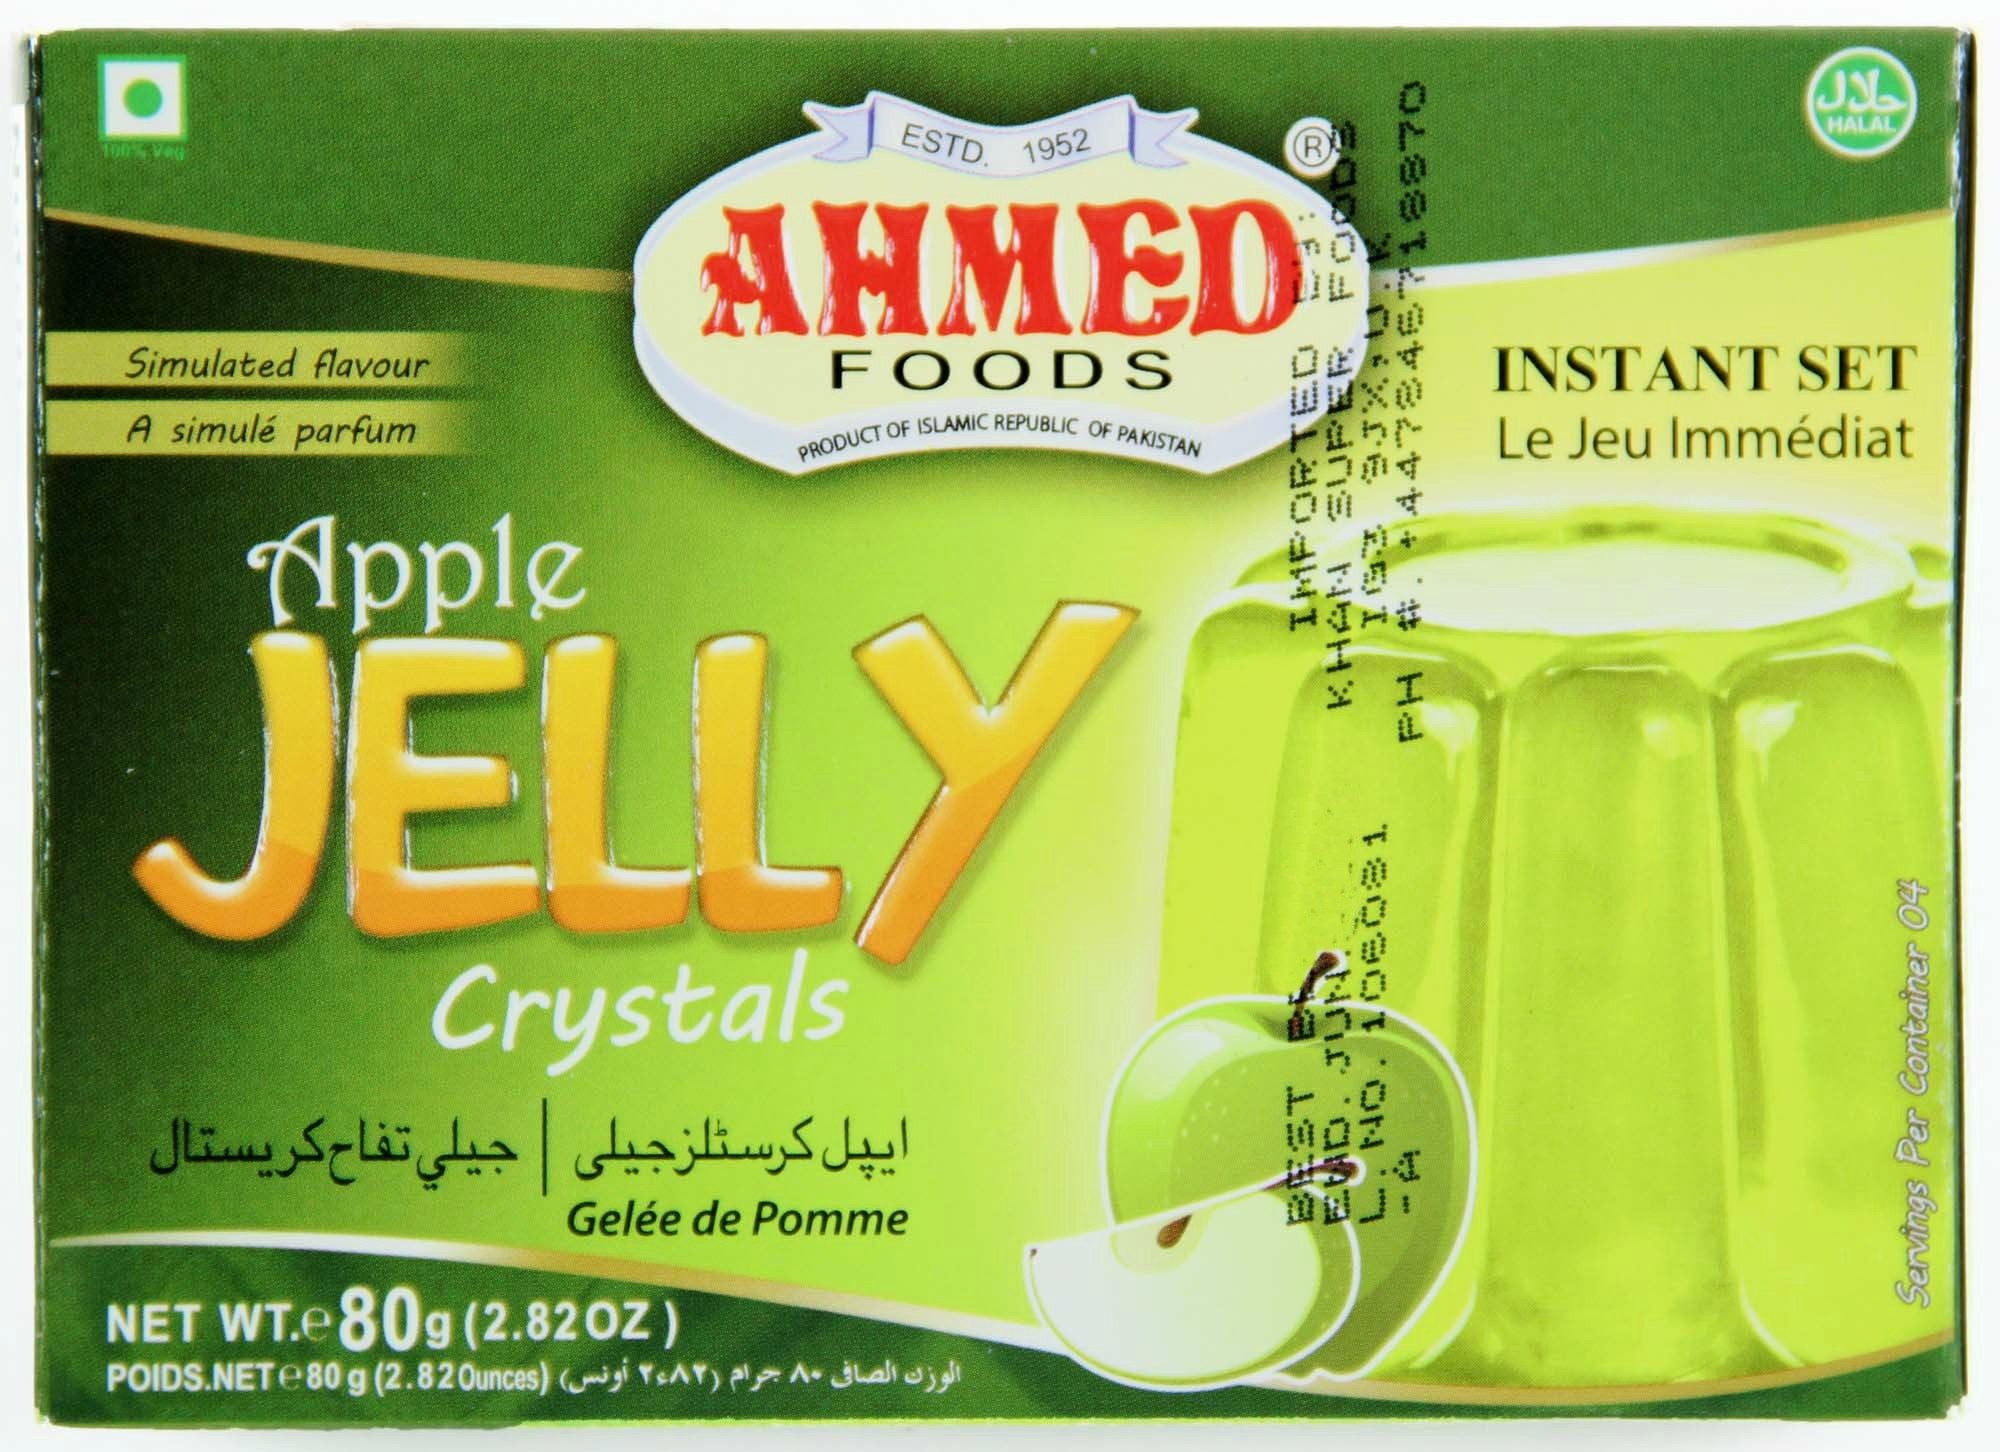 Ahmed Foods Jelly Crystals